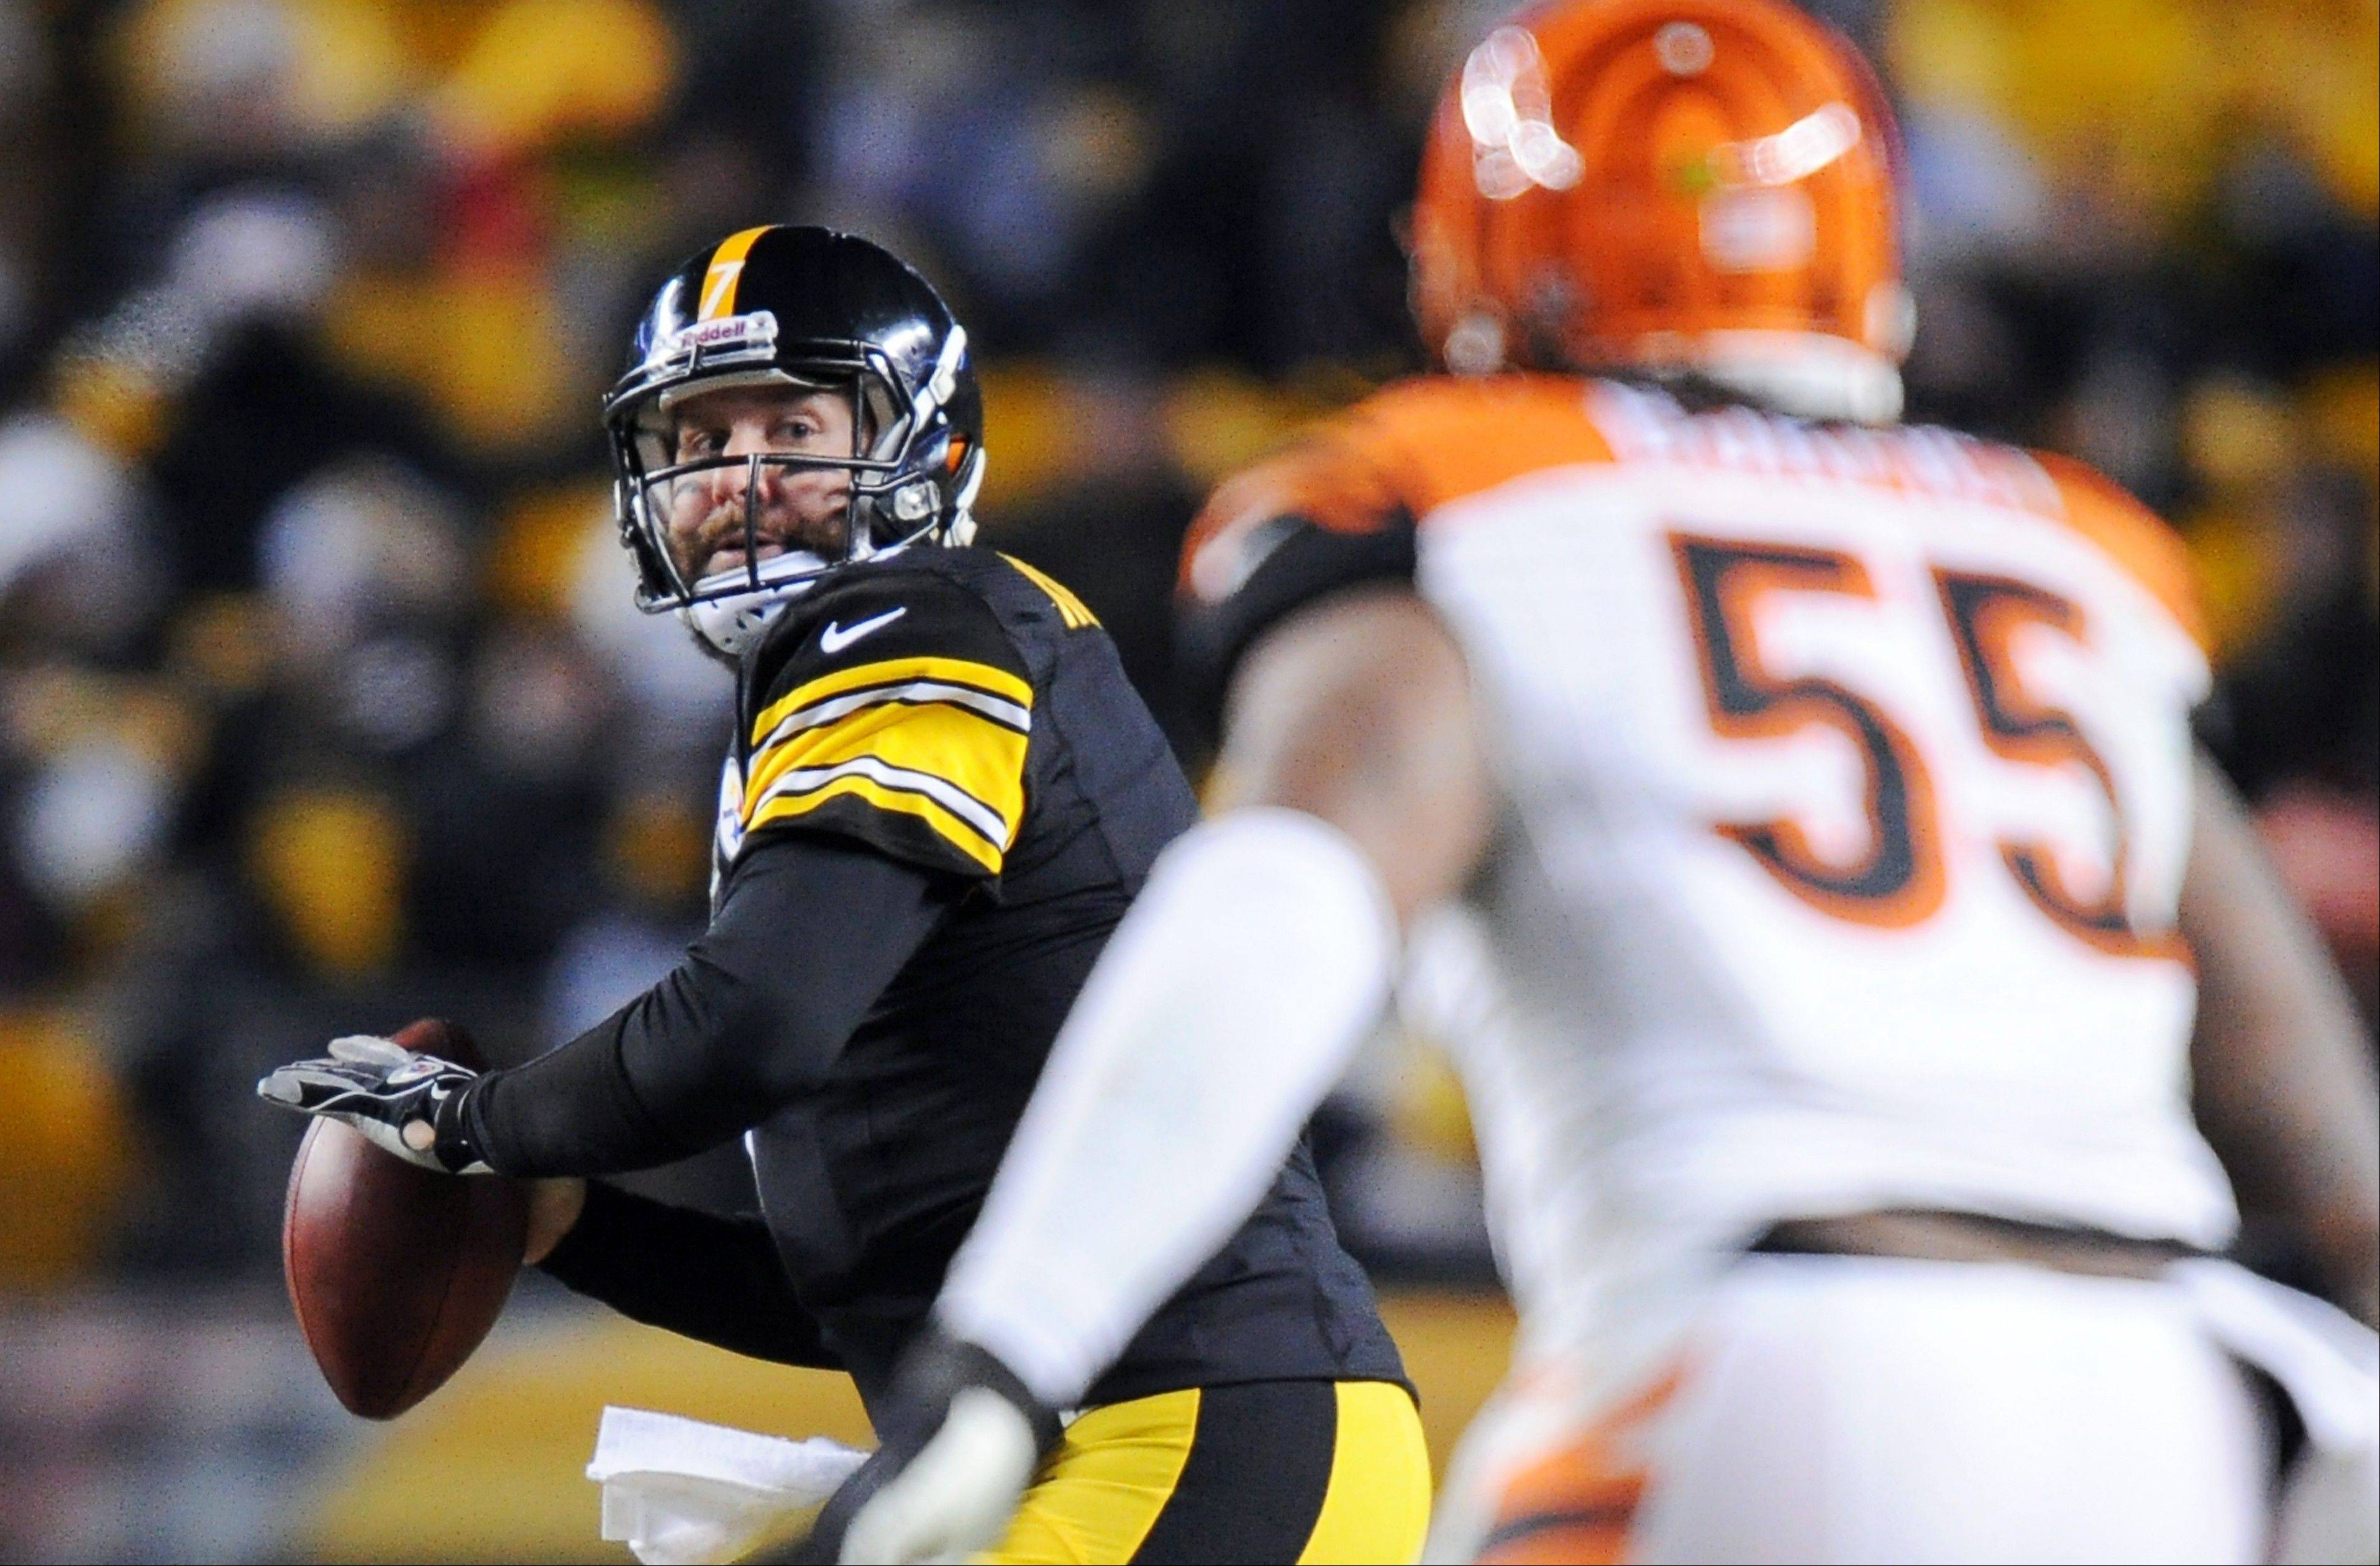 Pittsburgh Steelers quarterback Ben Roethlisberger, left, looks to pass as Cincinnati Bengals outside linebacker Vontaze Burfict (55) defends in the third quarter an NFL football game on Sunday, Dec. 15, 2013, in Pittsburgh.